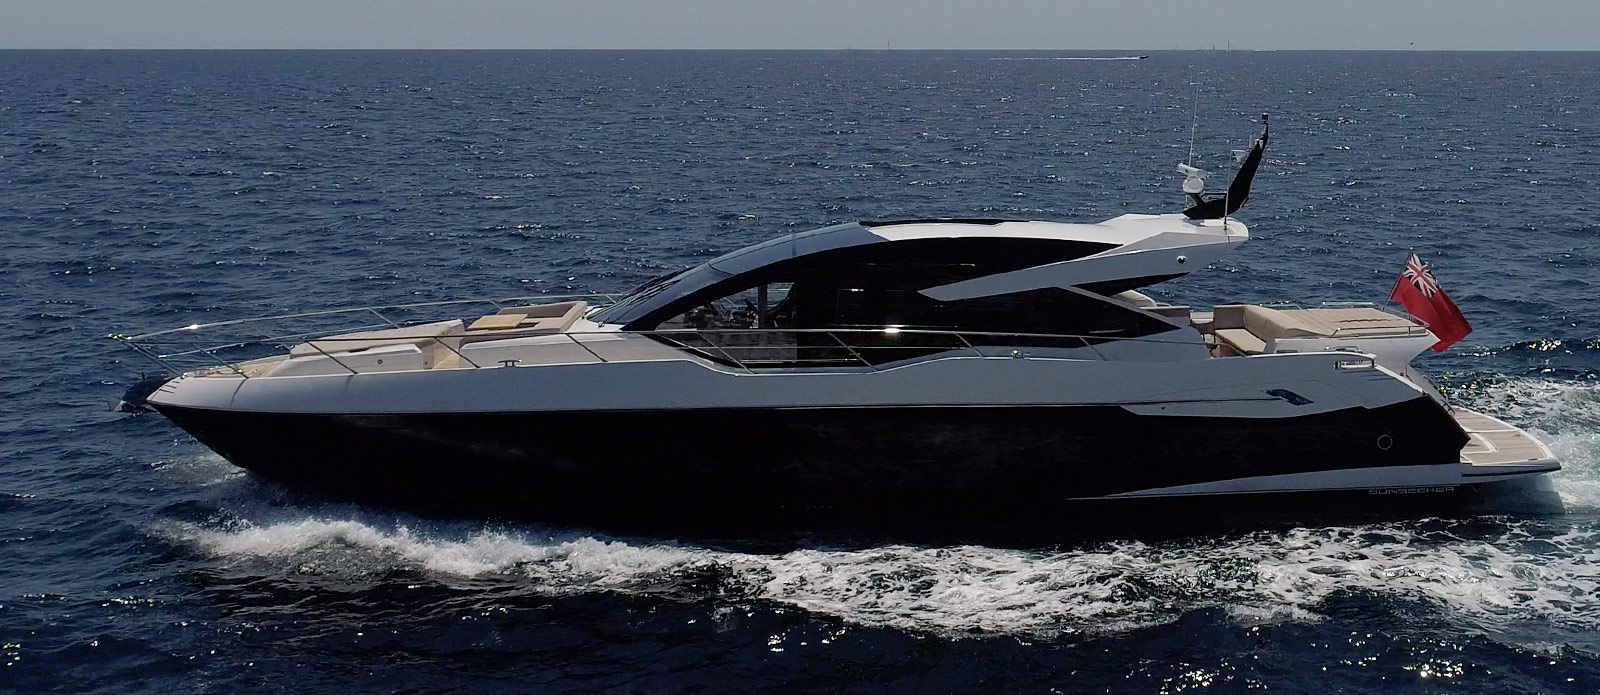 Sunseeker 74 Predator - Side-Profile-2